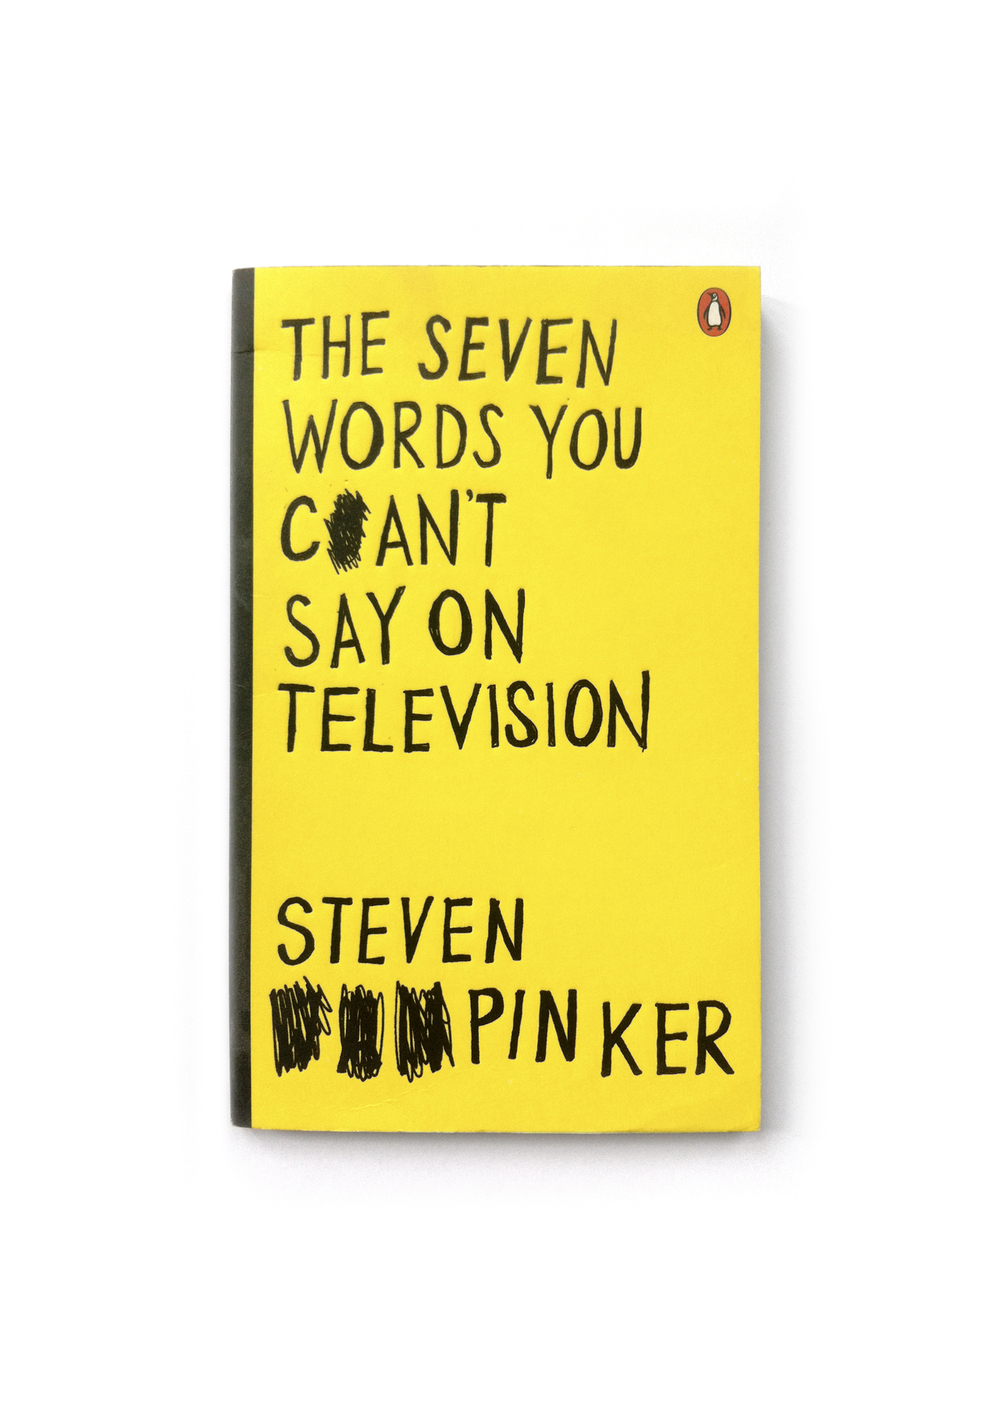 The Seven Words You Can't Say on Television by Steven Pinker - Art Direction: Jim Stoddart Design: Gray318